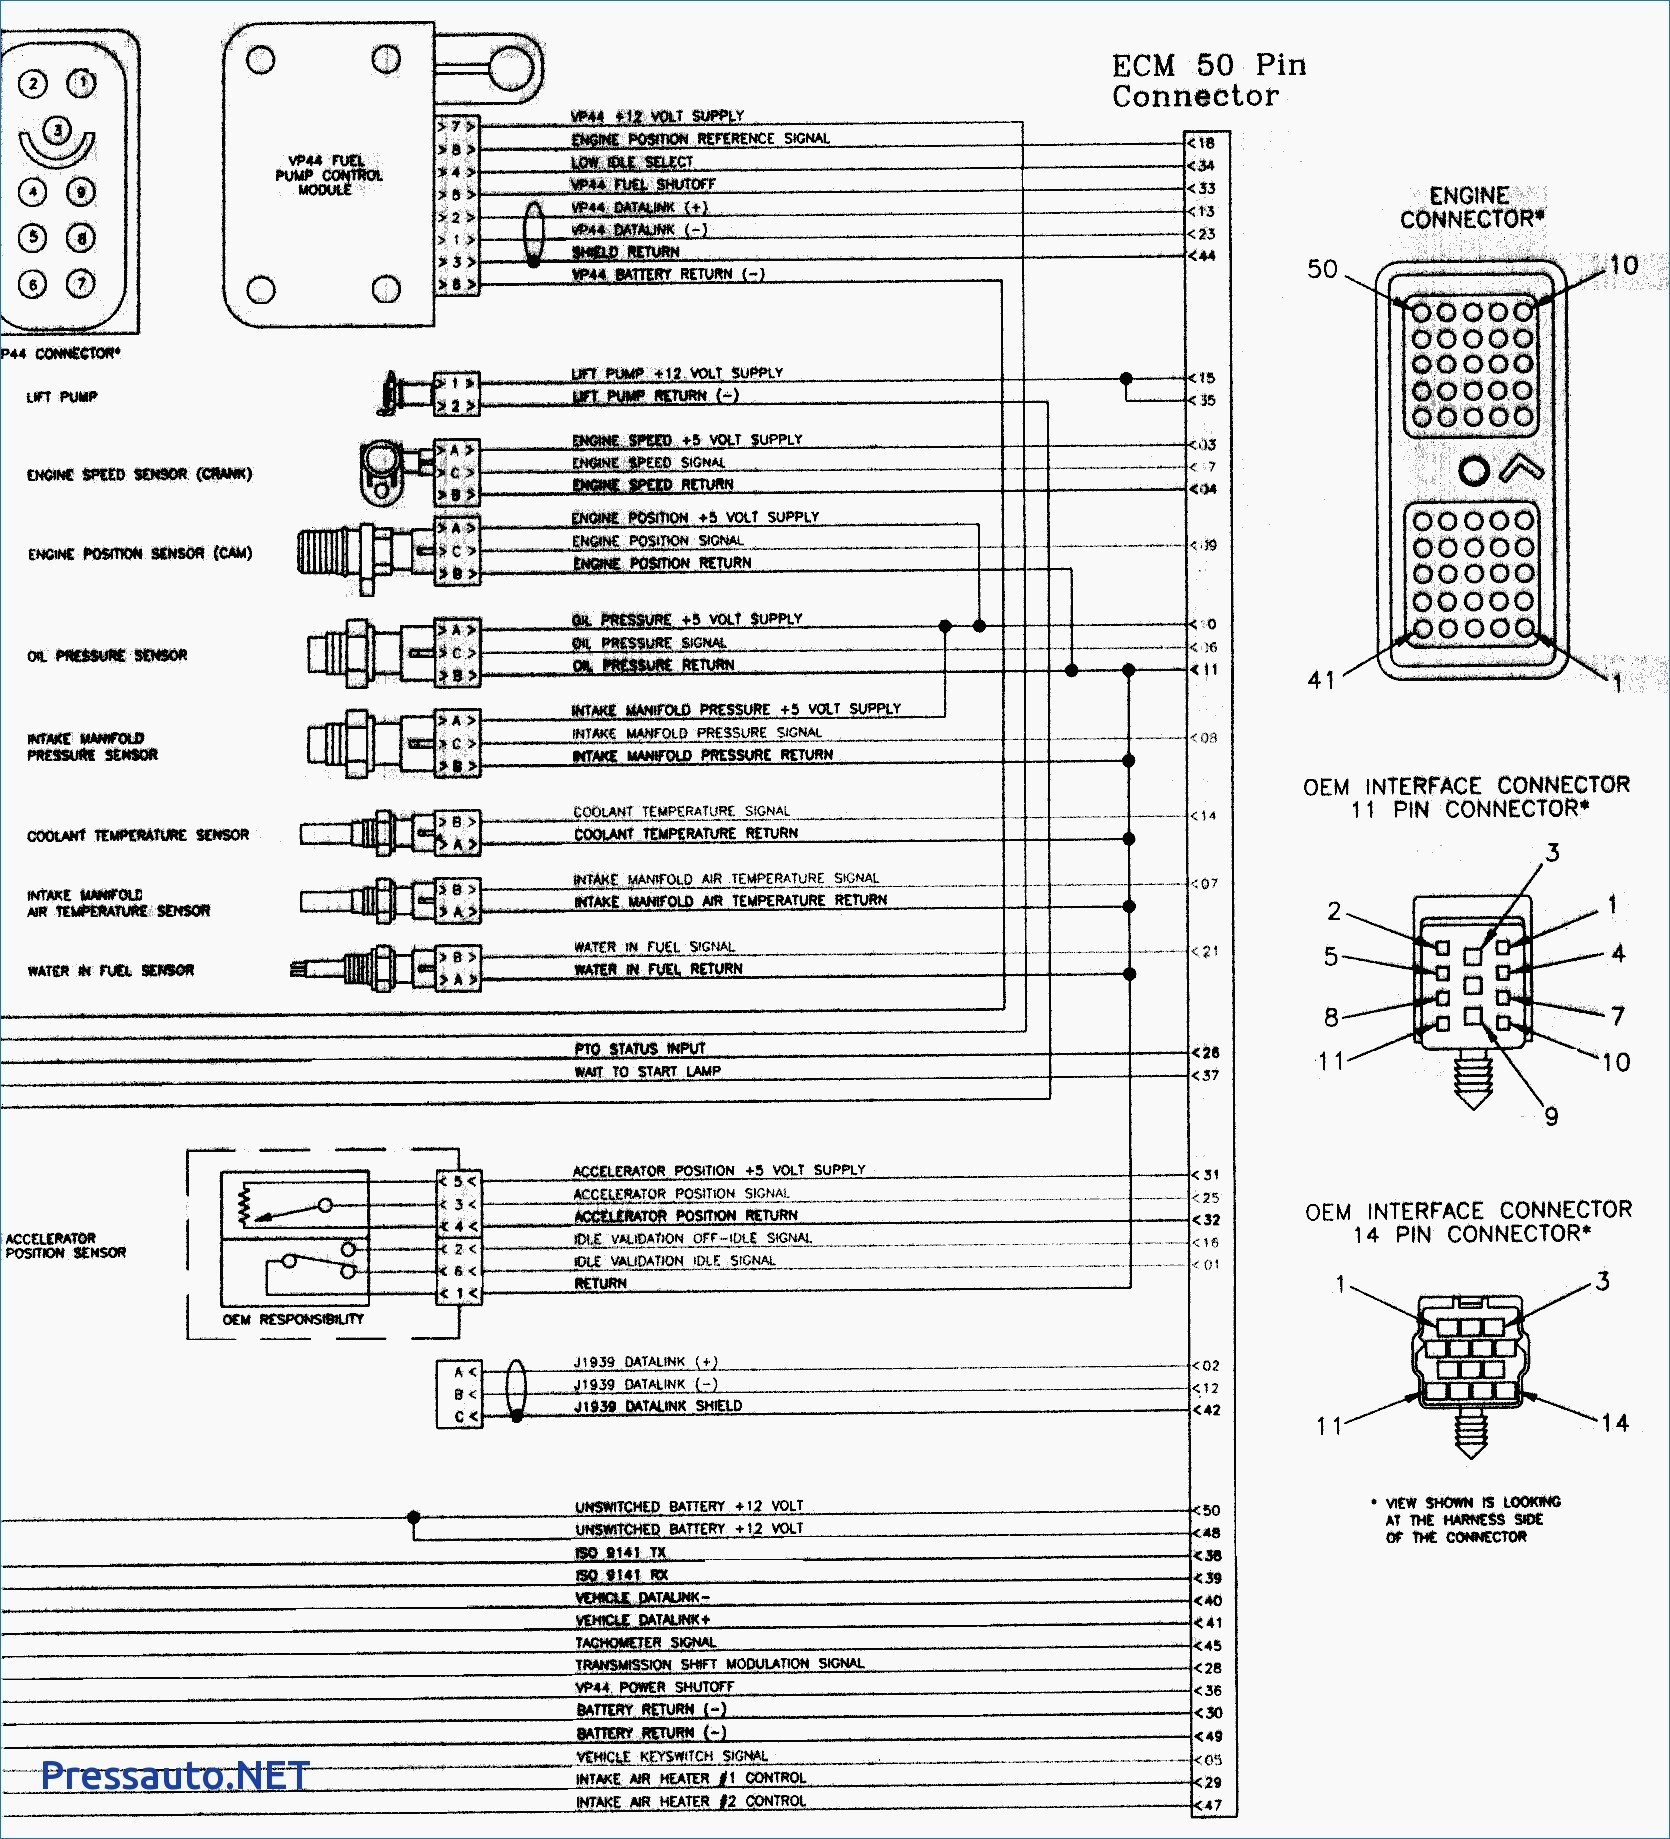 2002 dodge ram 1500 pcm wiring 2001 dodge ram 1500 pcm wiring diagram